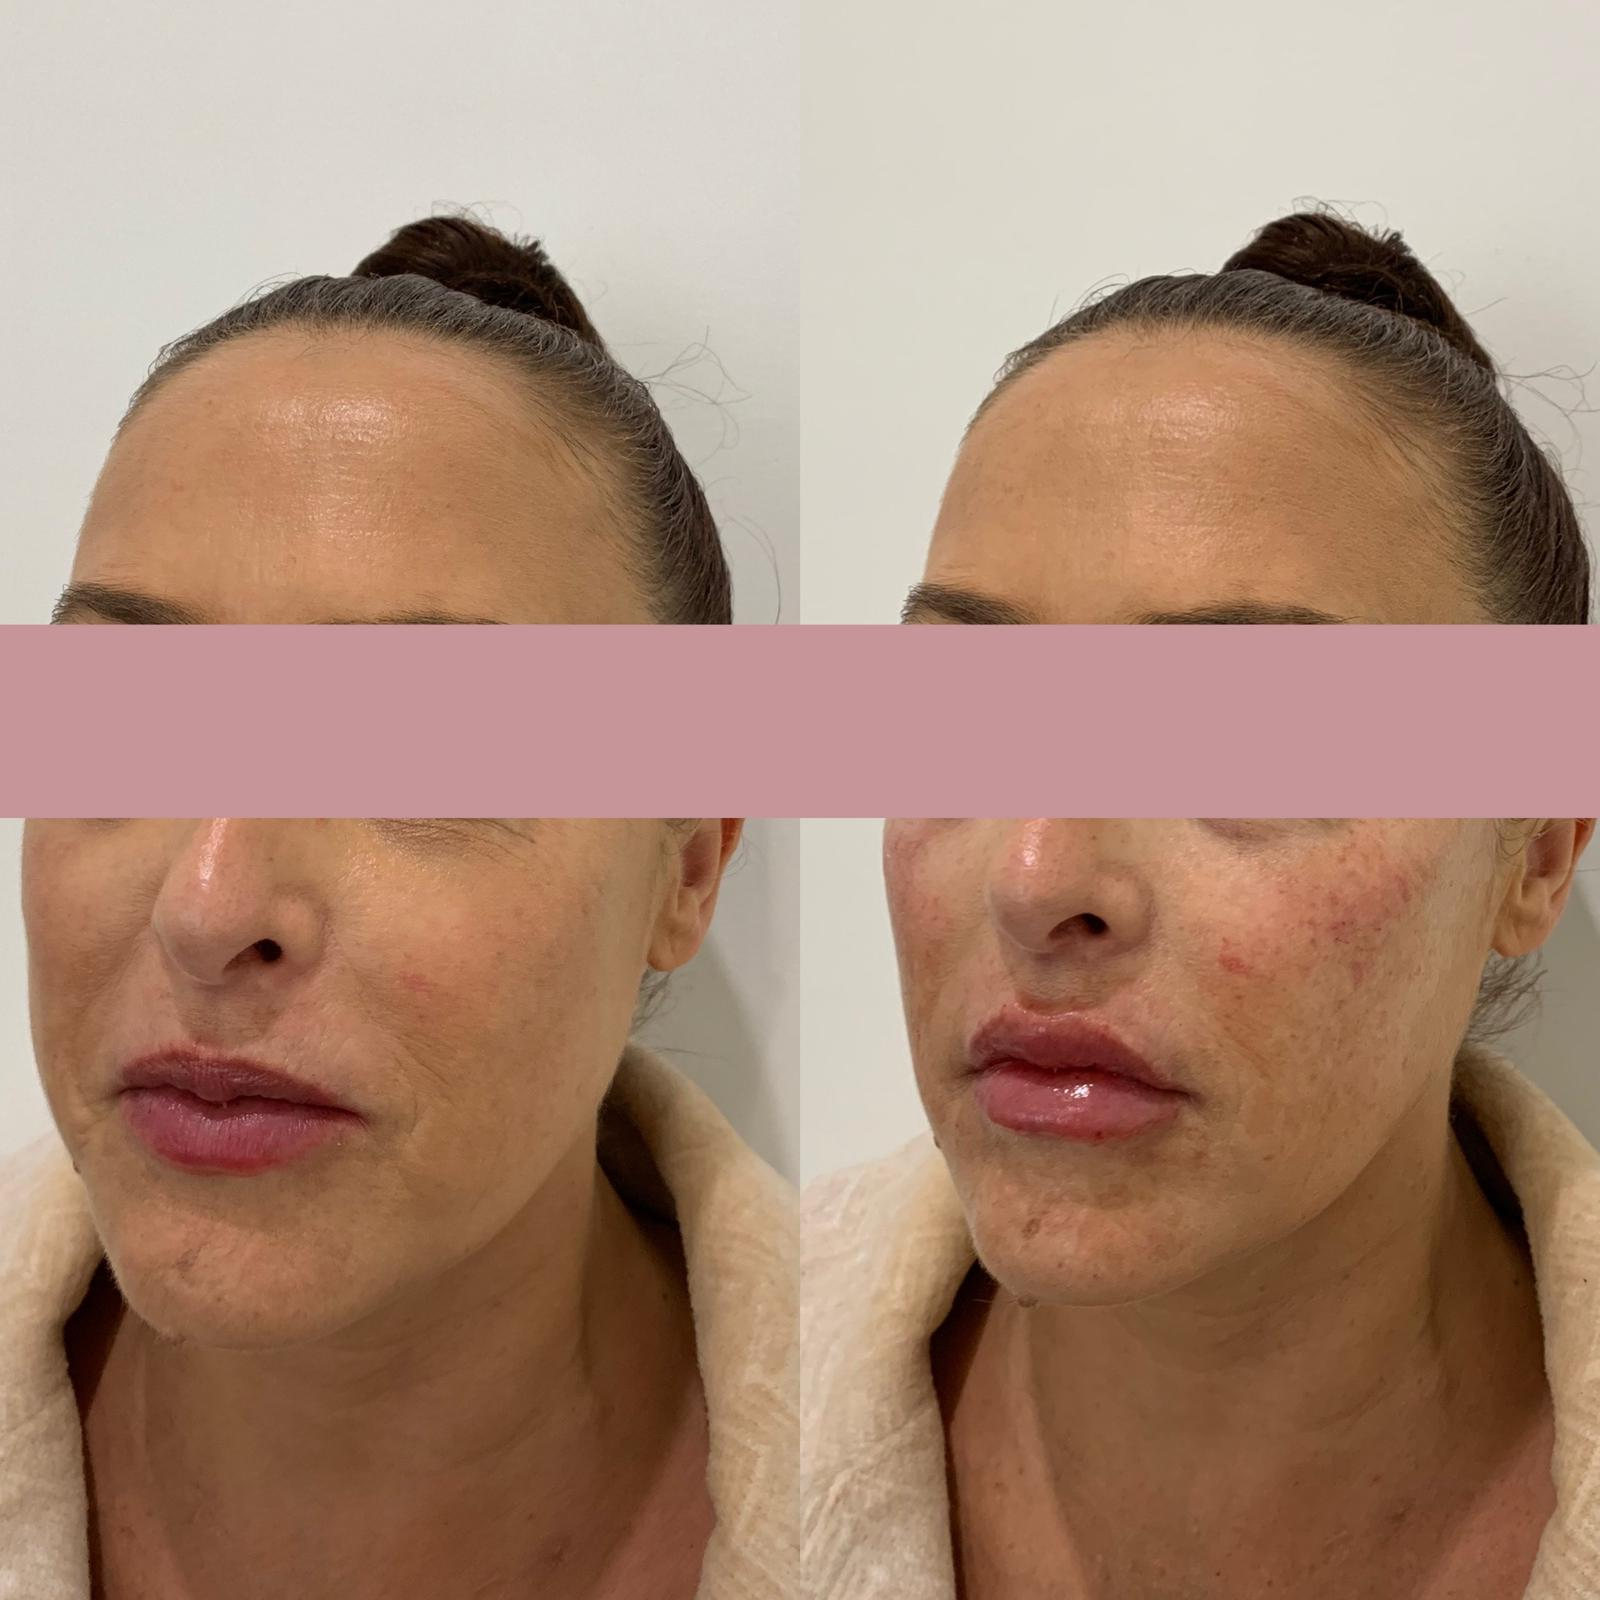 Before & After Chin Fillers